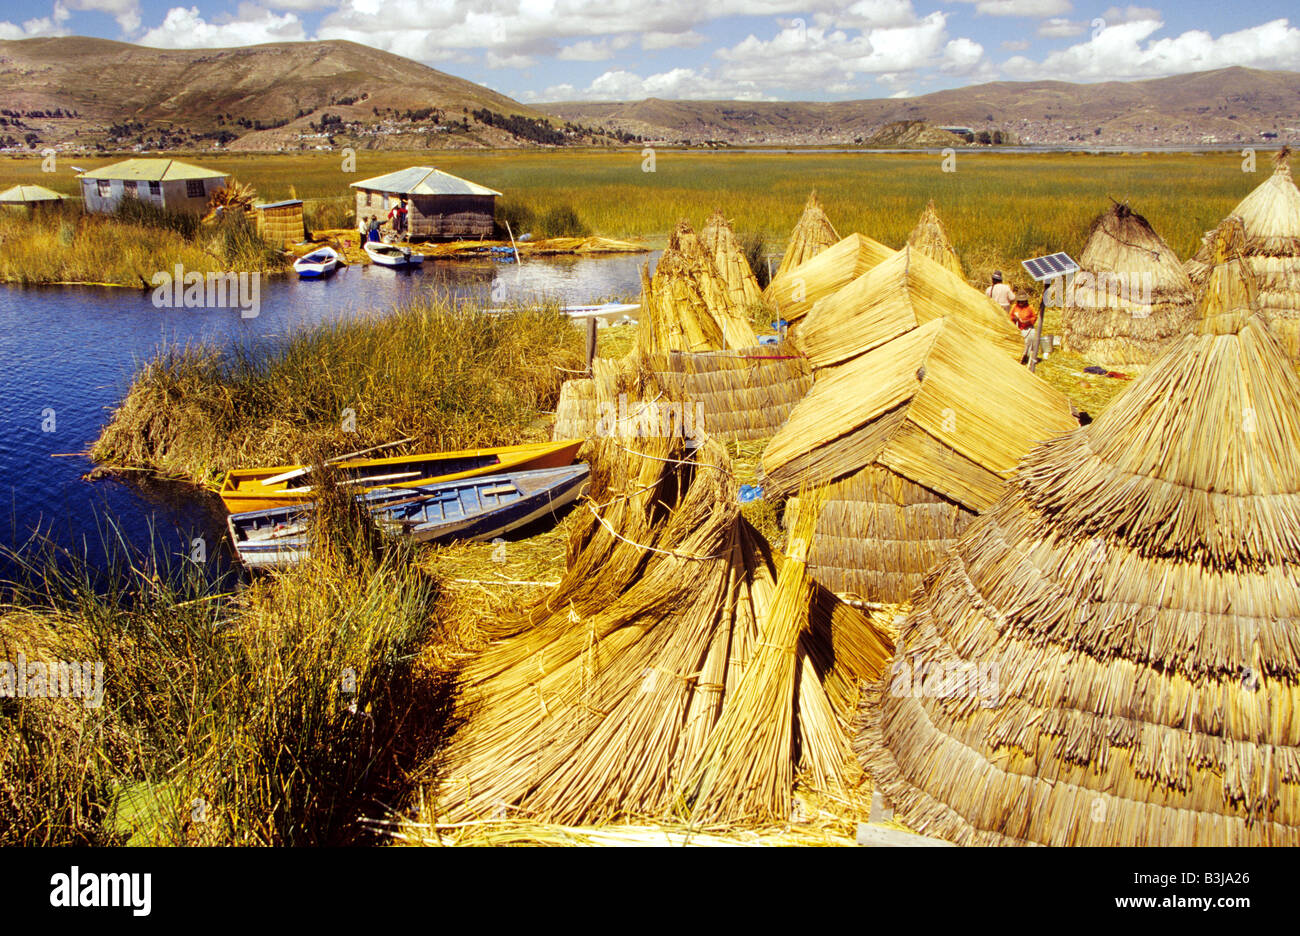 Floating islands and Huts made of reed of the Uros peoples of lake Titikaka aka Titicaca in Puno, Peru - Stock Image